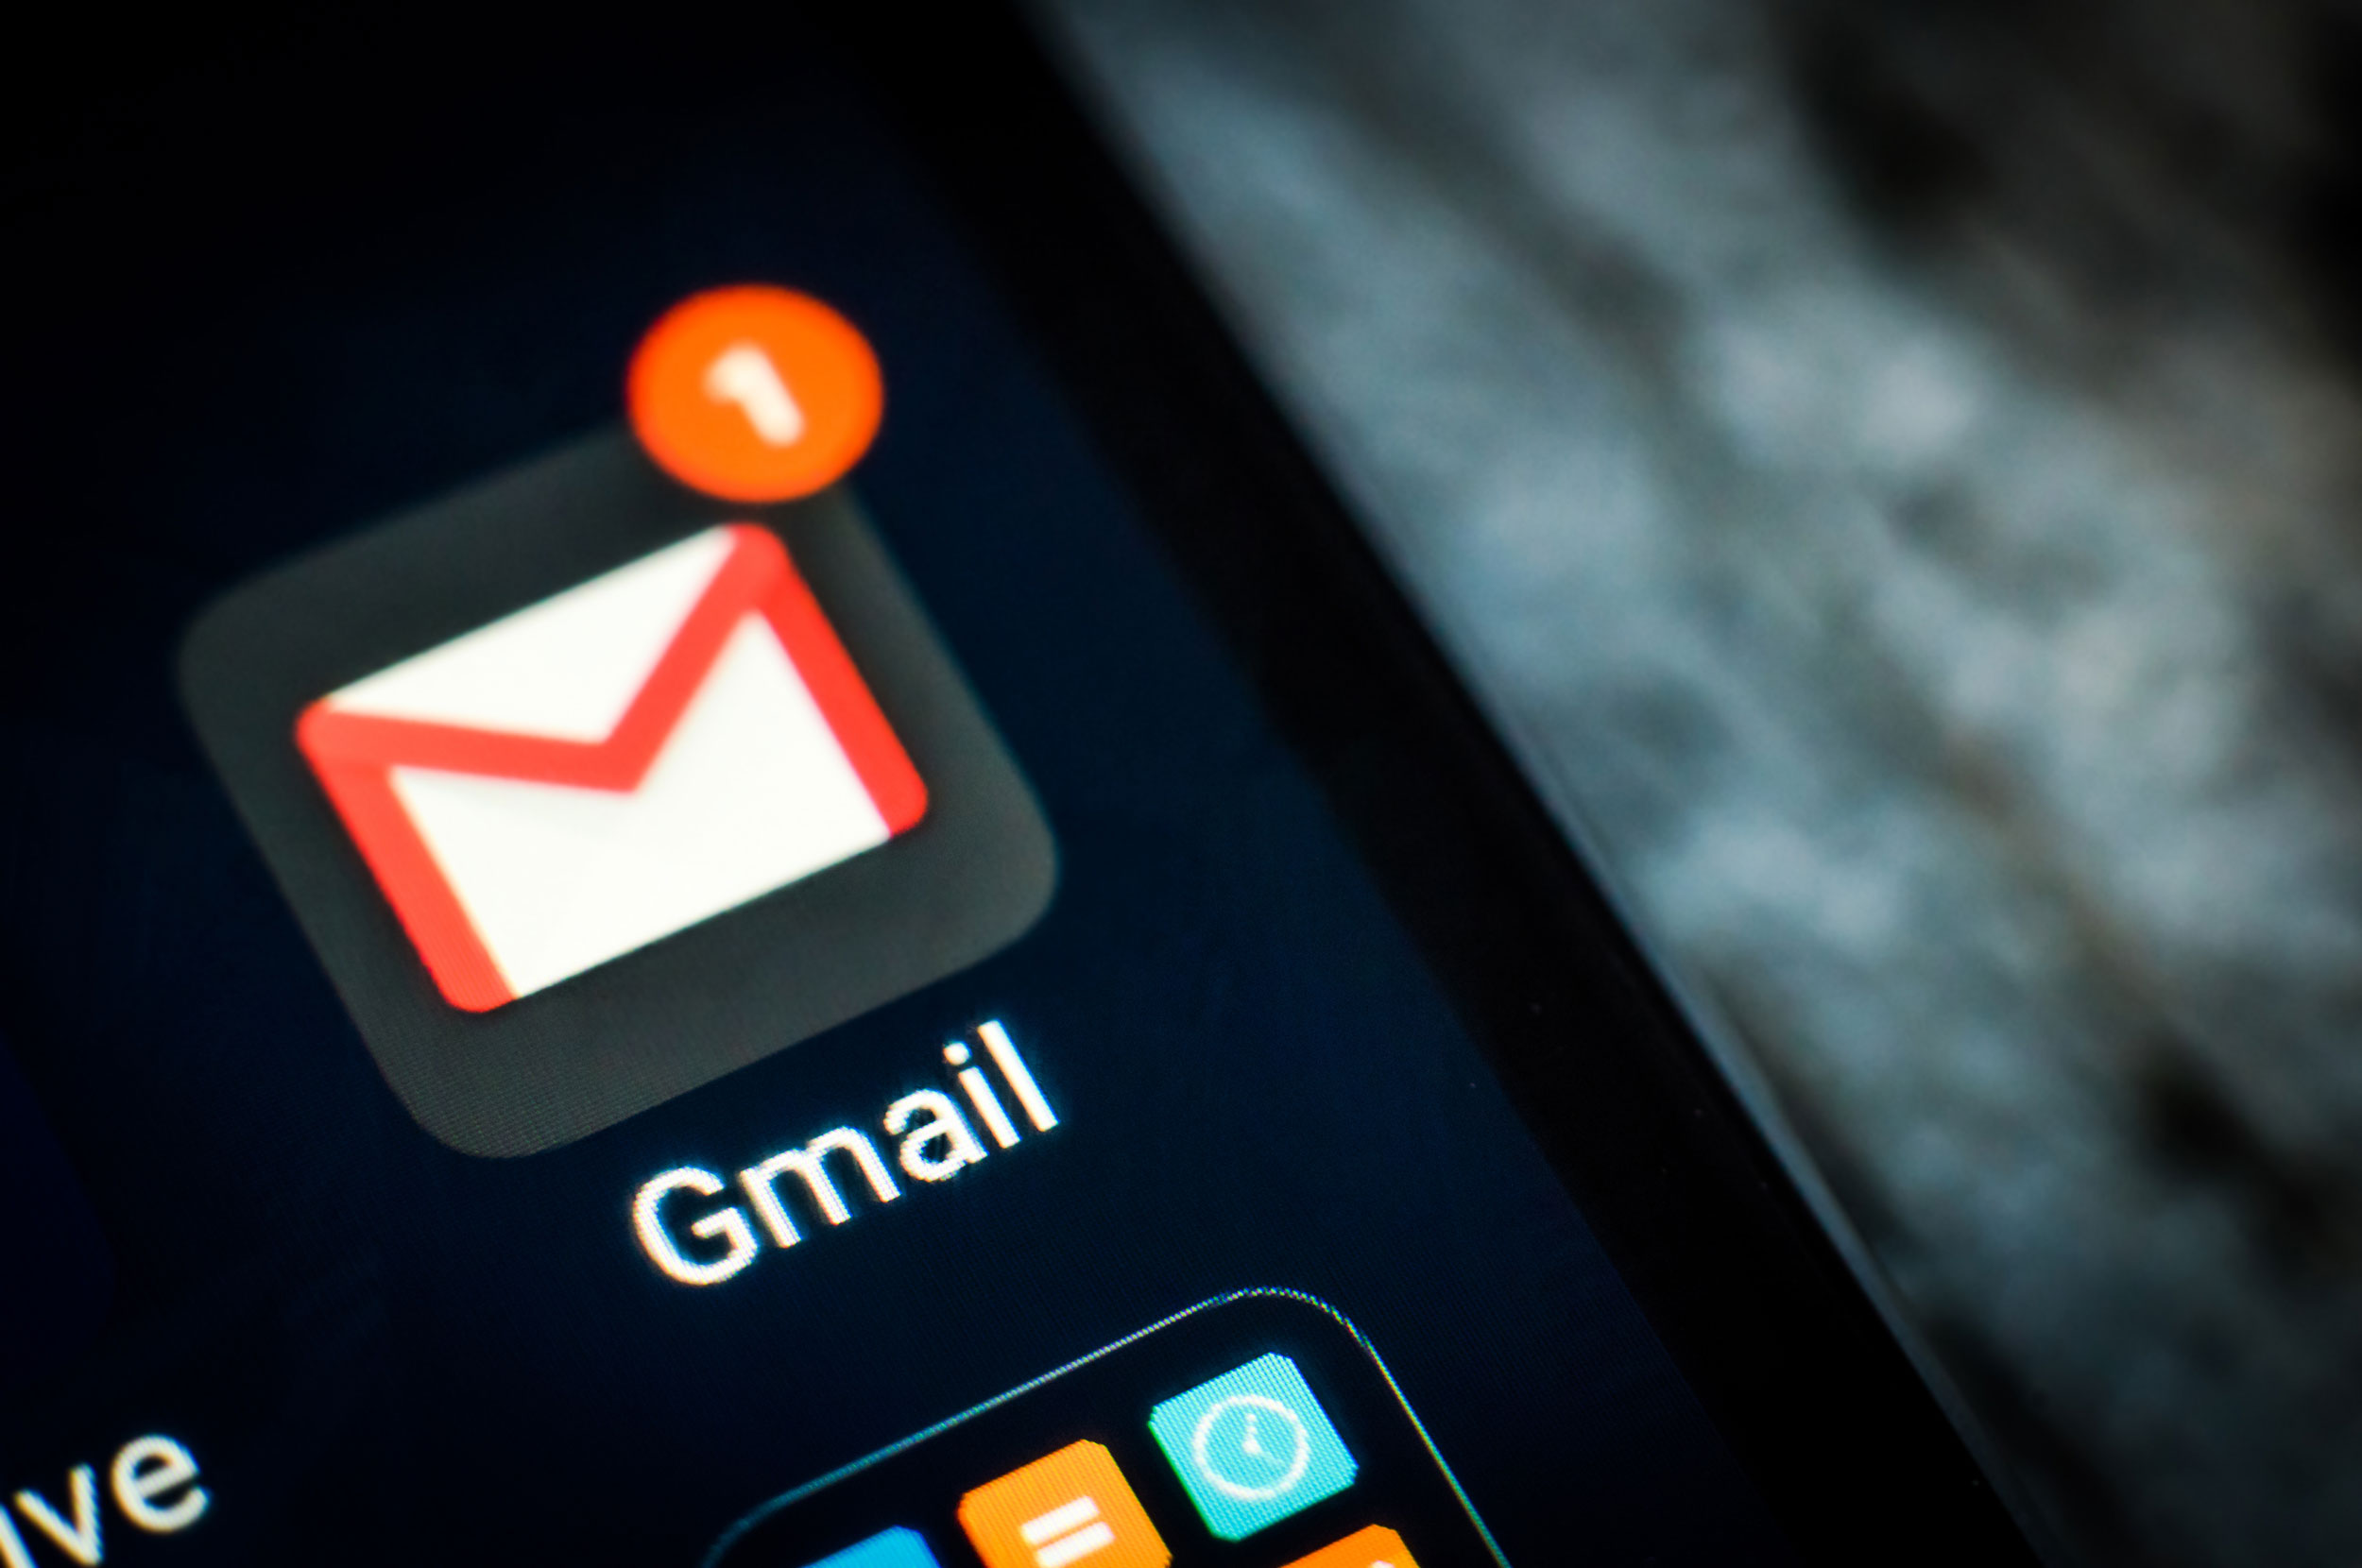 Gmail addresses also ignore dots. So emails sent to hillybilly@gmail.com and hi.ll.ybi.lly@gmail.com will both arrive in your inbox. You own all the dotted versions of your username. Next time you sign up for anything, use these tricks.